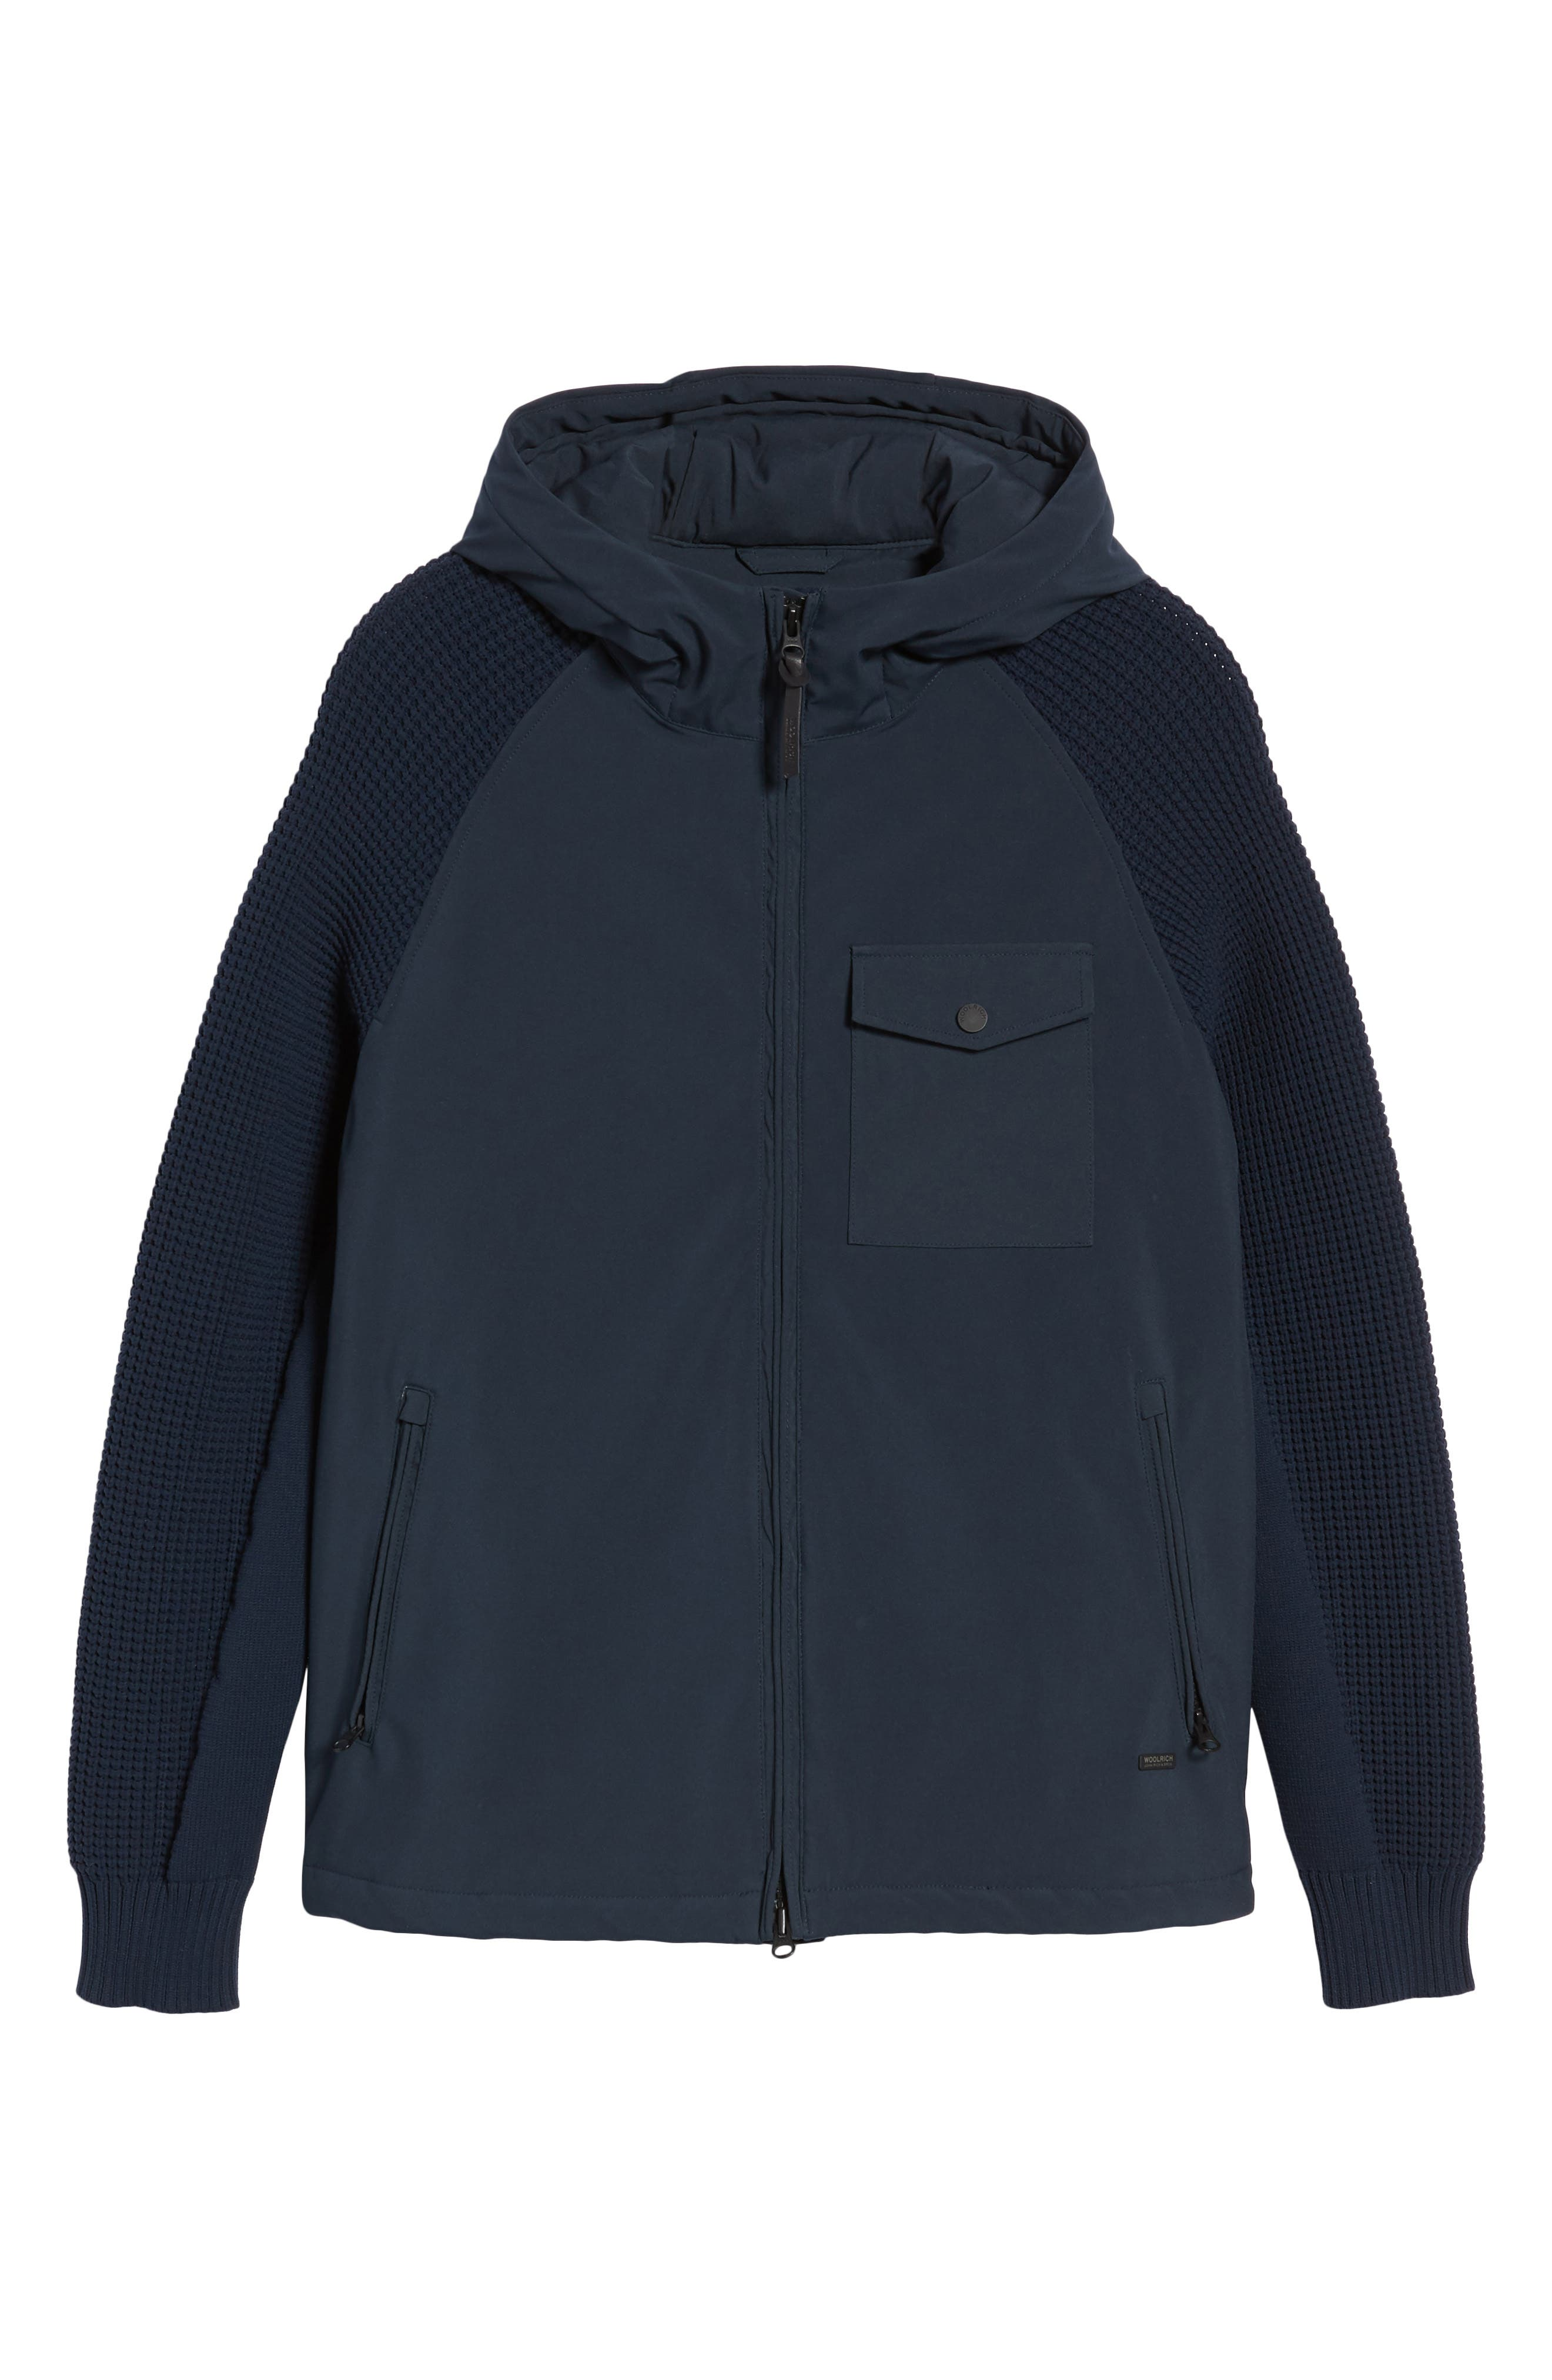 & Bros. Plum Run Jacket,                             Alternate thumbnail 5, color,                             400